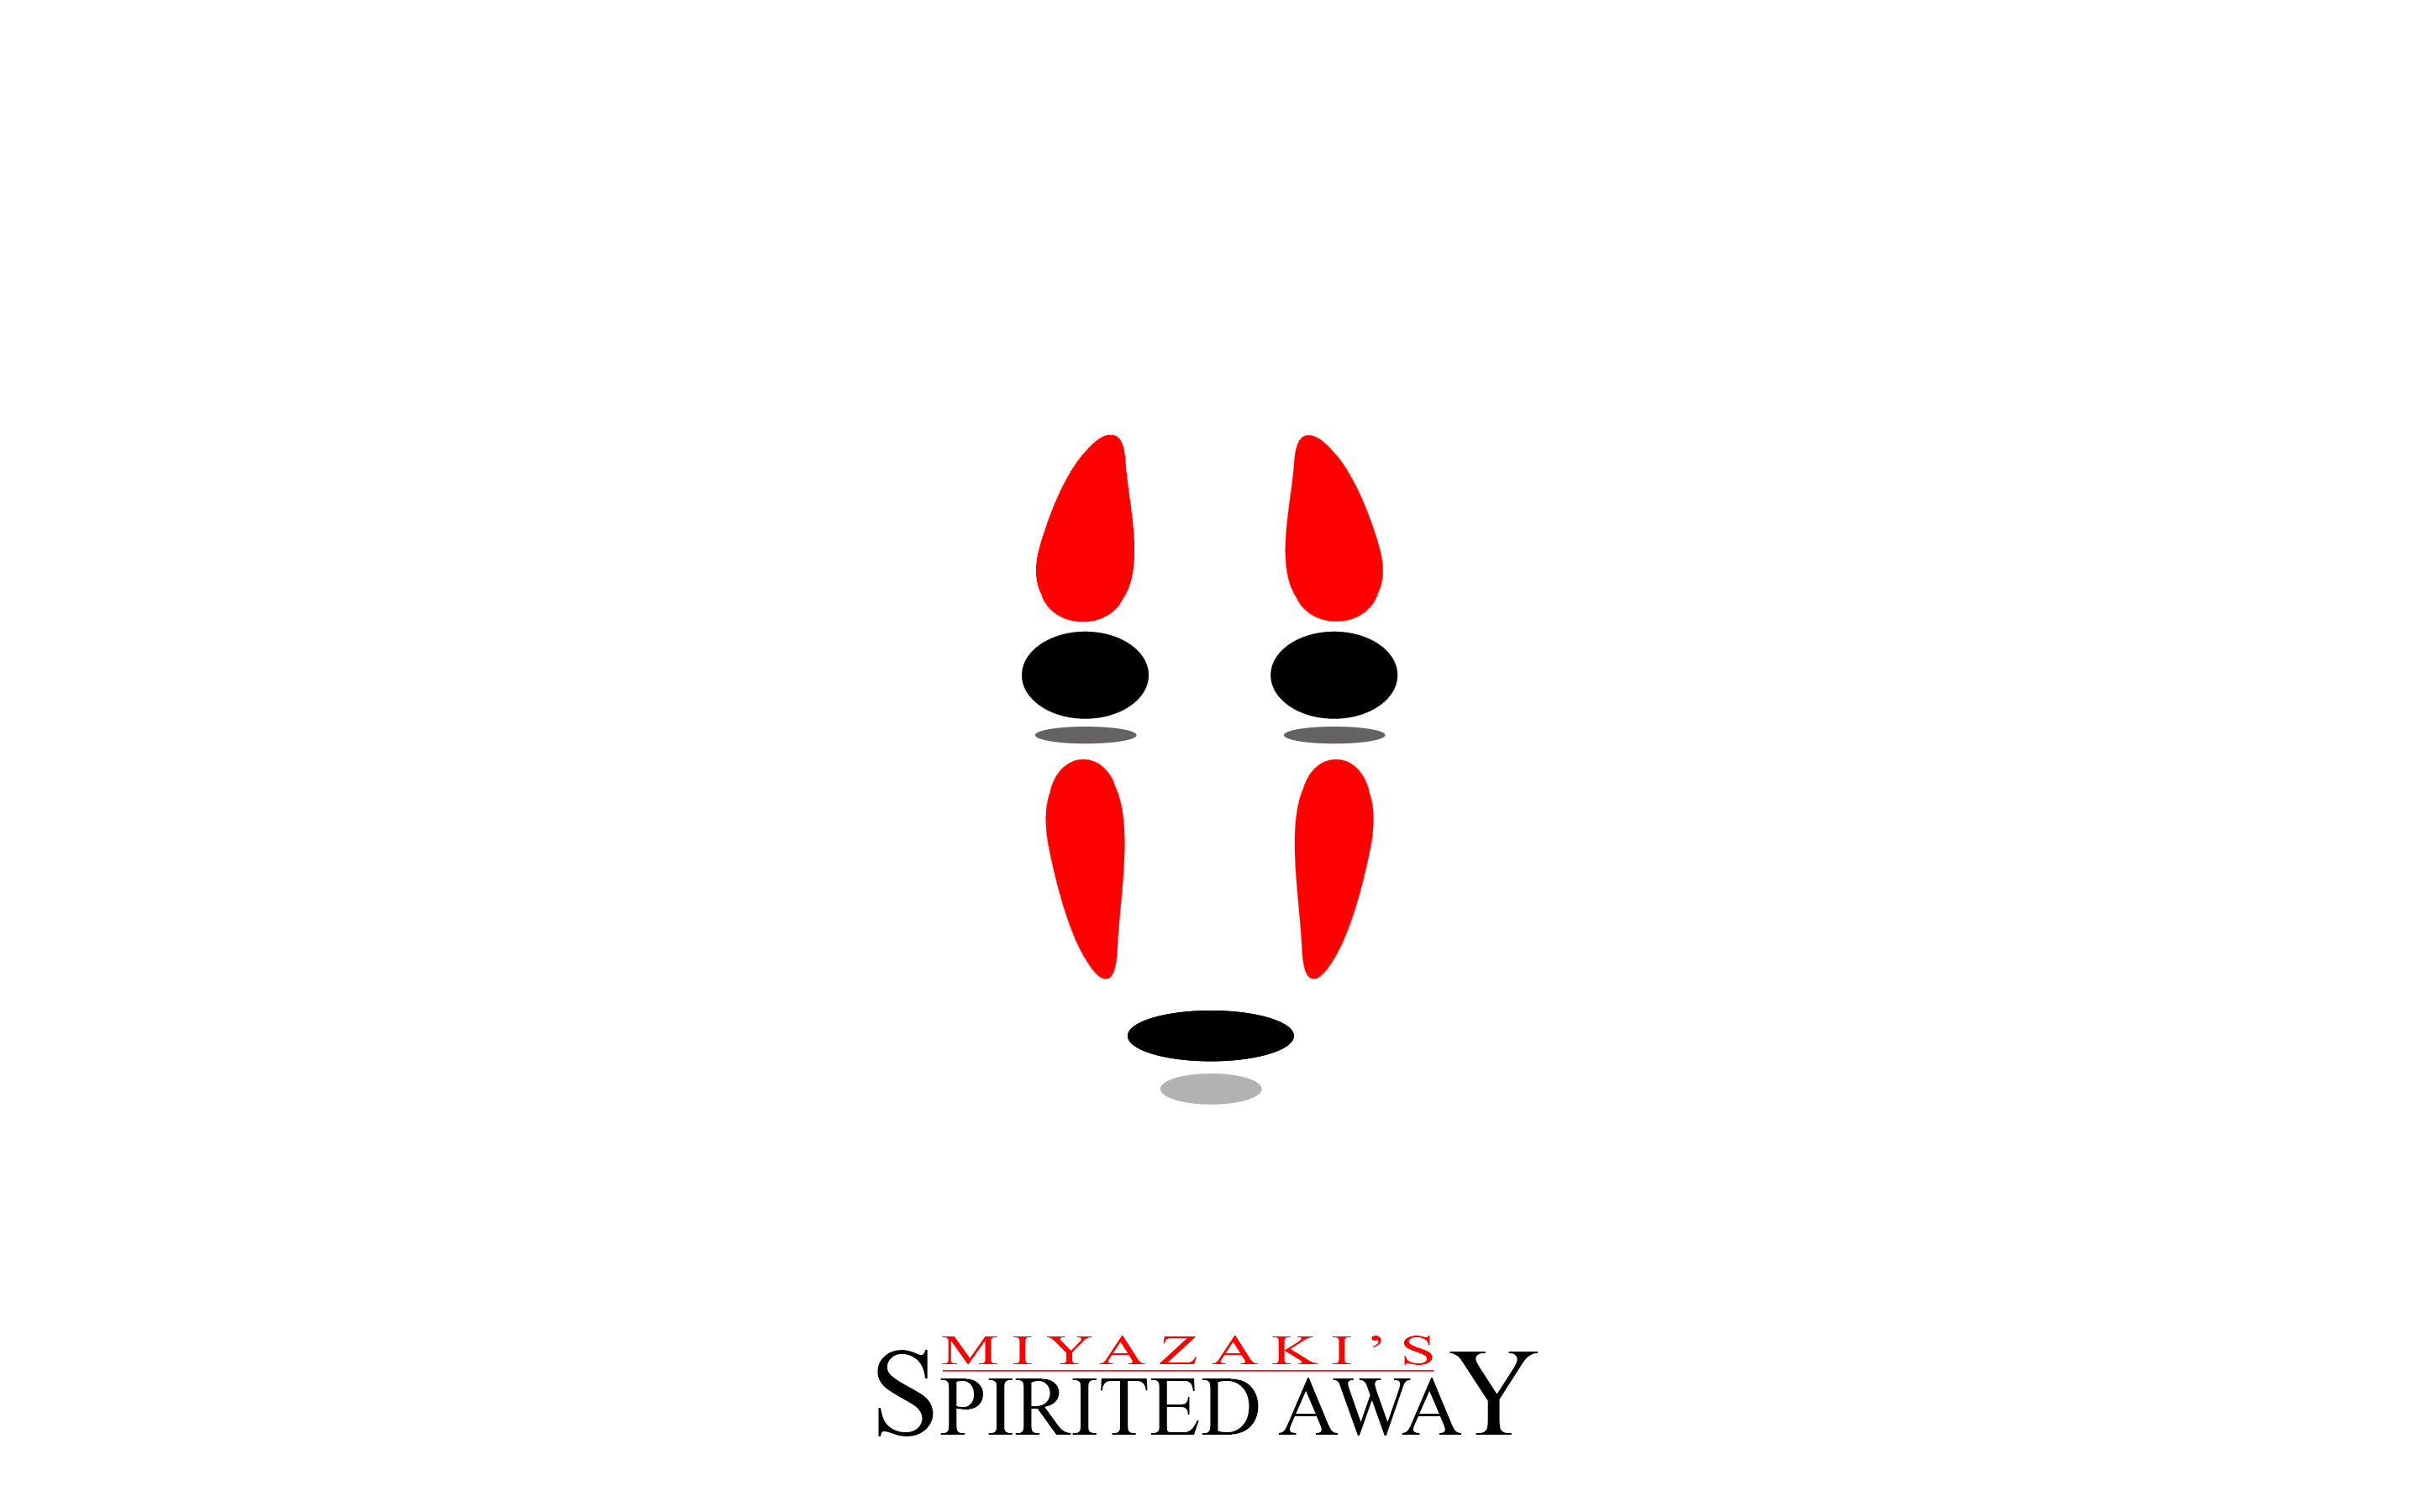 No Face Spirited Away Wallpaper (70+ images)